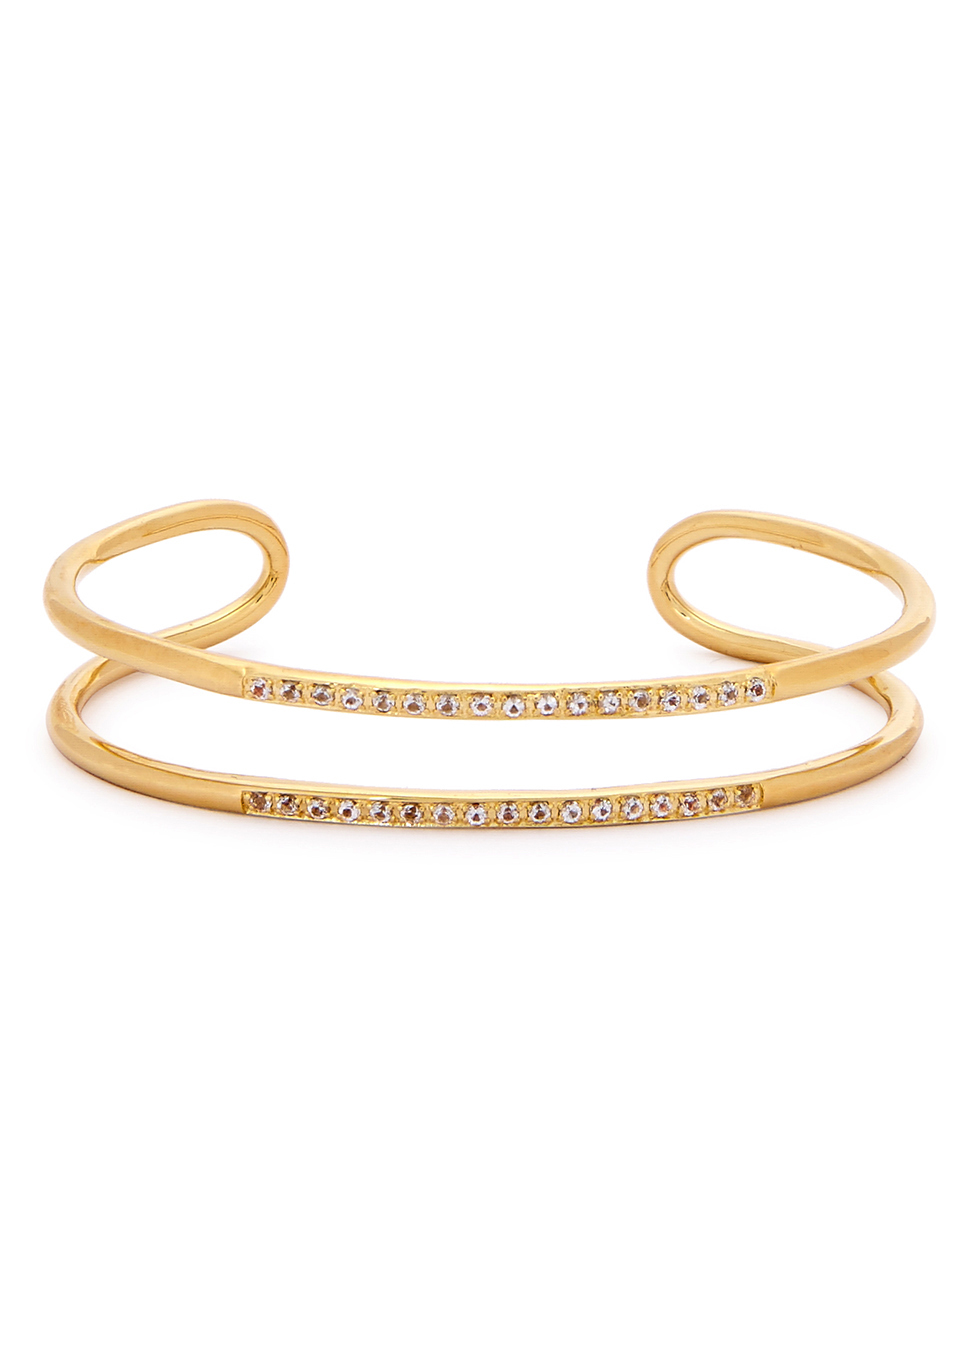 Selena 23kt Gold Plated Cuff - predominant colour: gold; occasions: evening, occasion; style: cuff; size: standard; finish: metallic; material: suede; season: a/w 2016; wardrobe: event